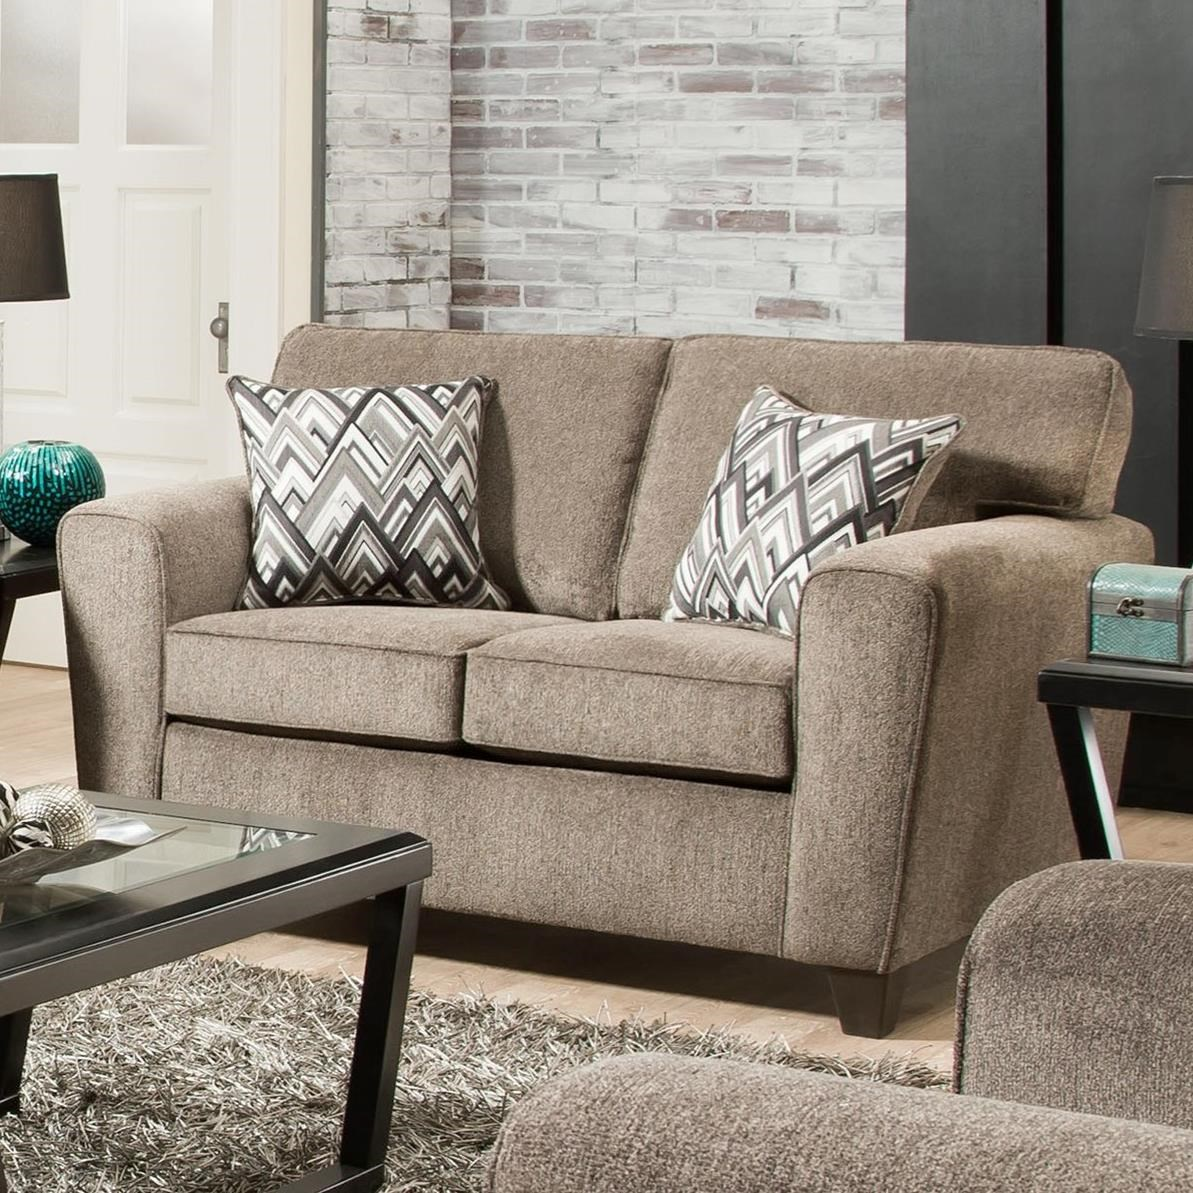 3100 Loveseat with Casual Style by Peak Living at Prime Brothers Furniture